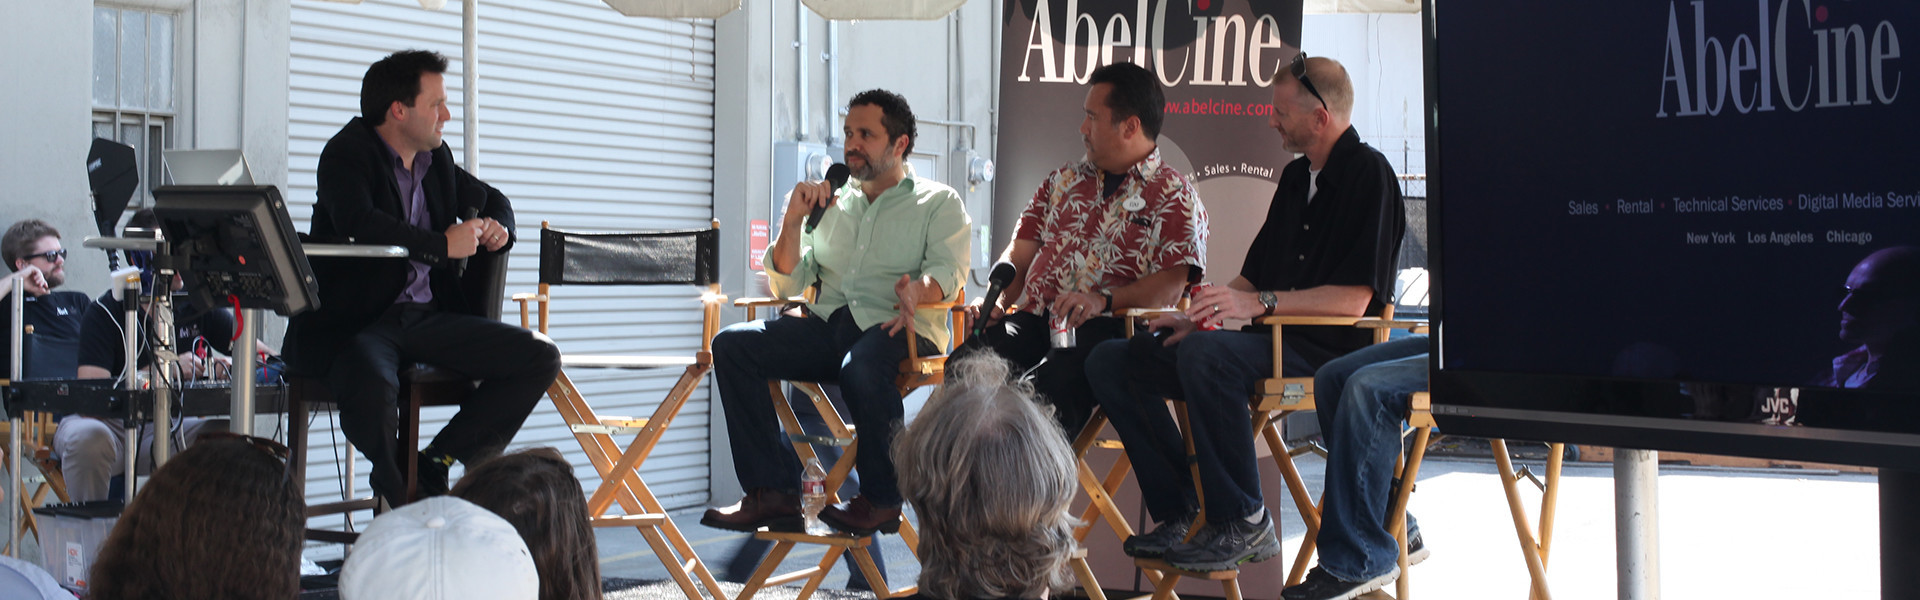 Header image for article Discussions of Technology and Craft at AbelCine's 25 Year Event in LA